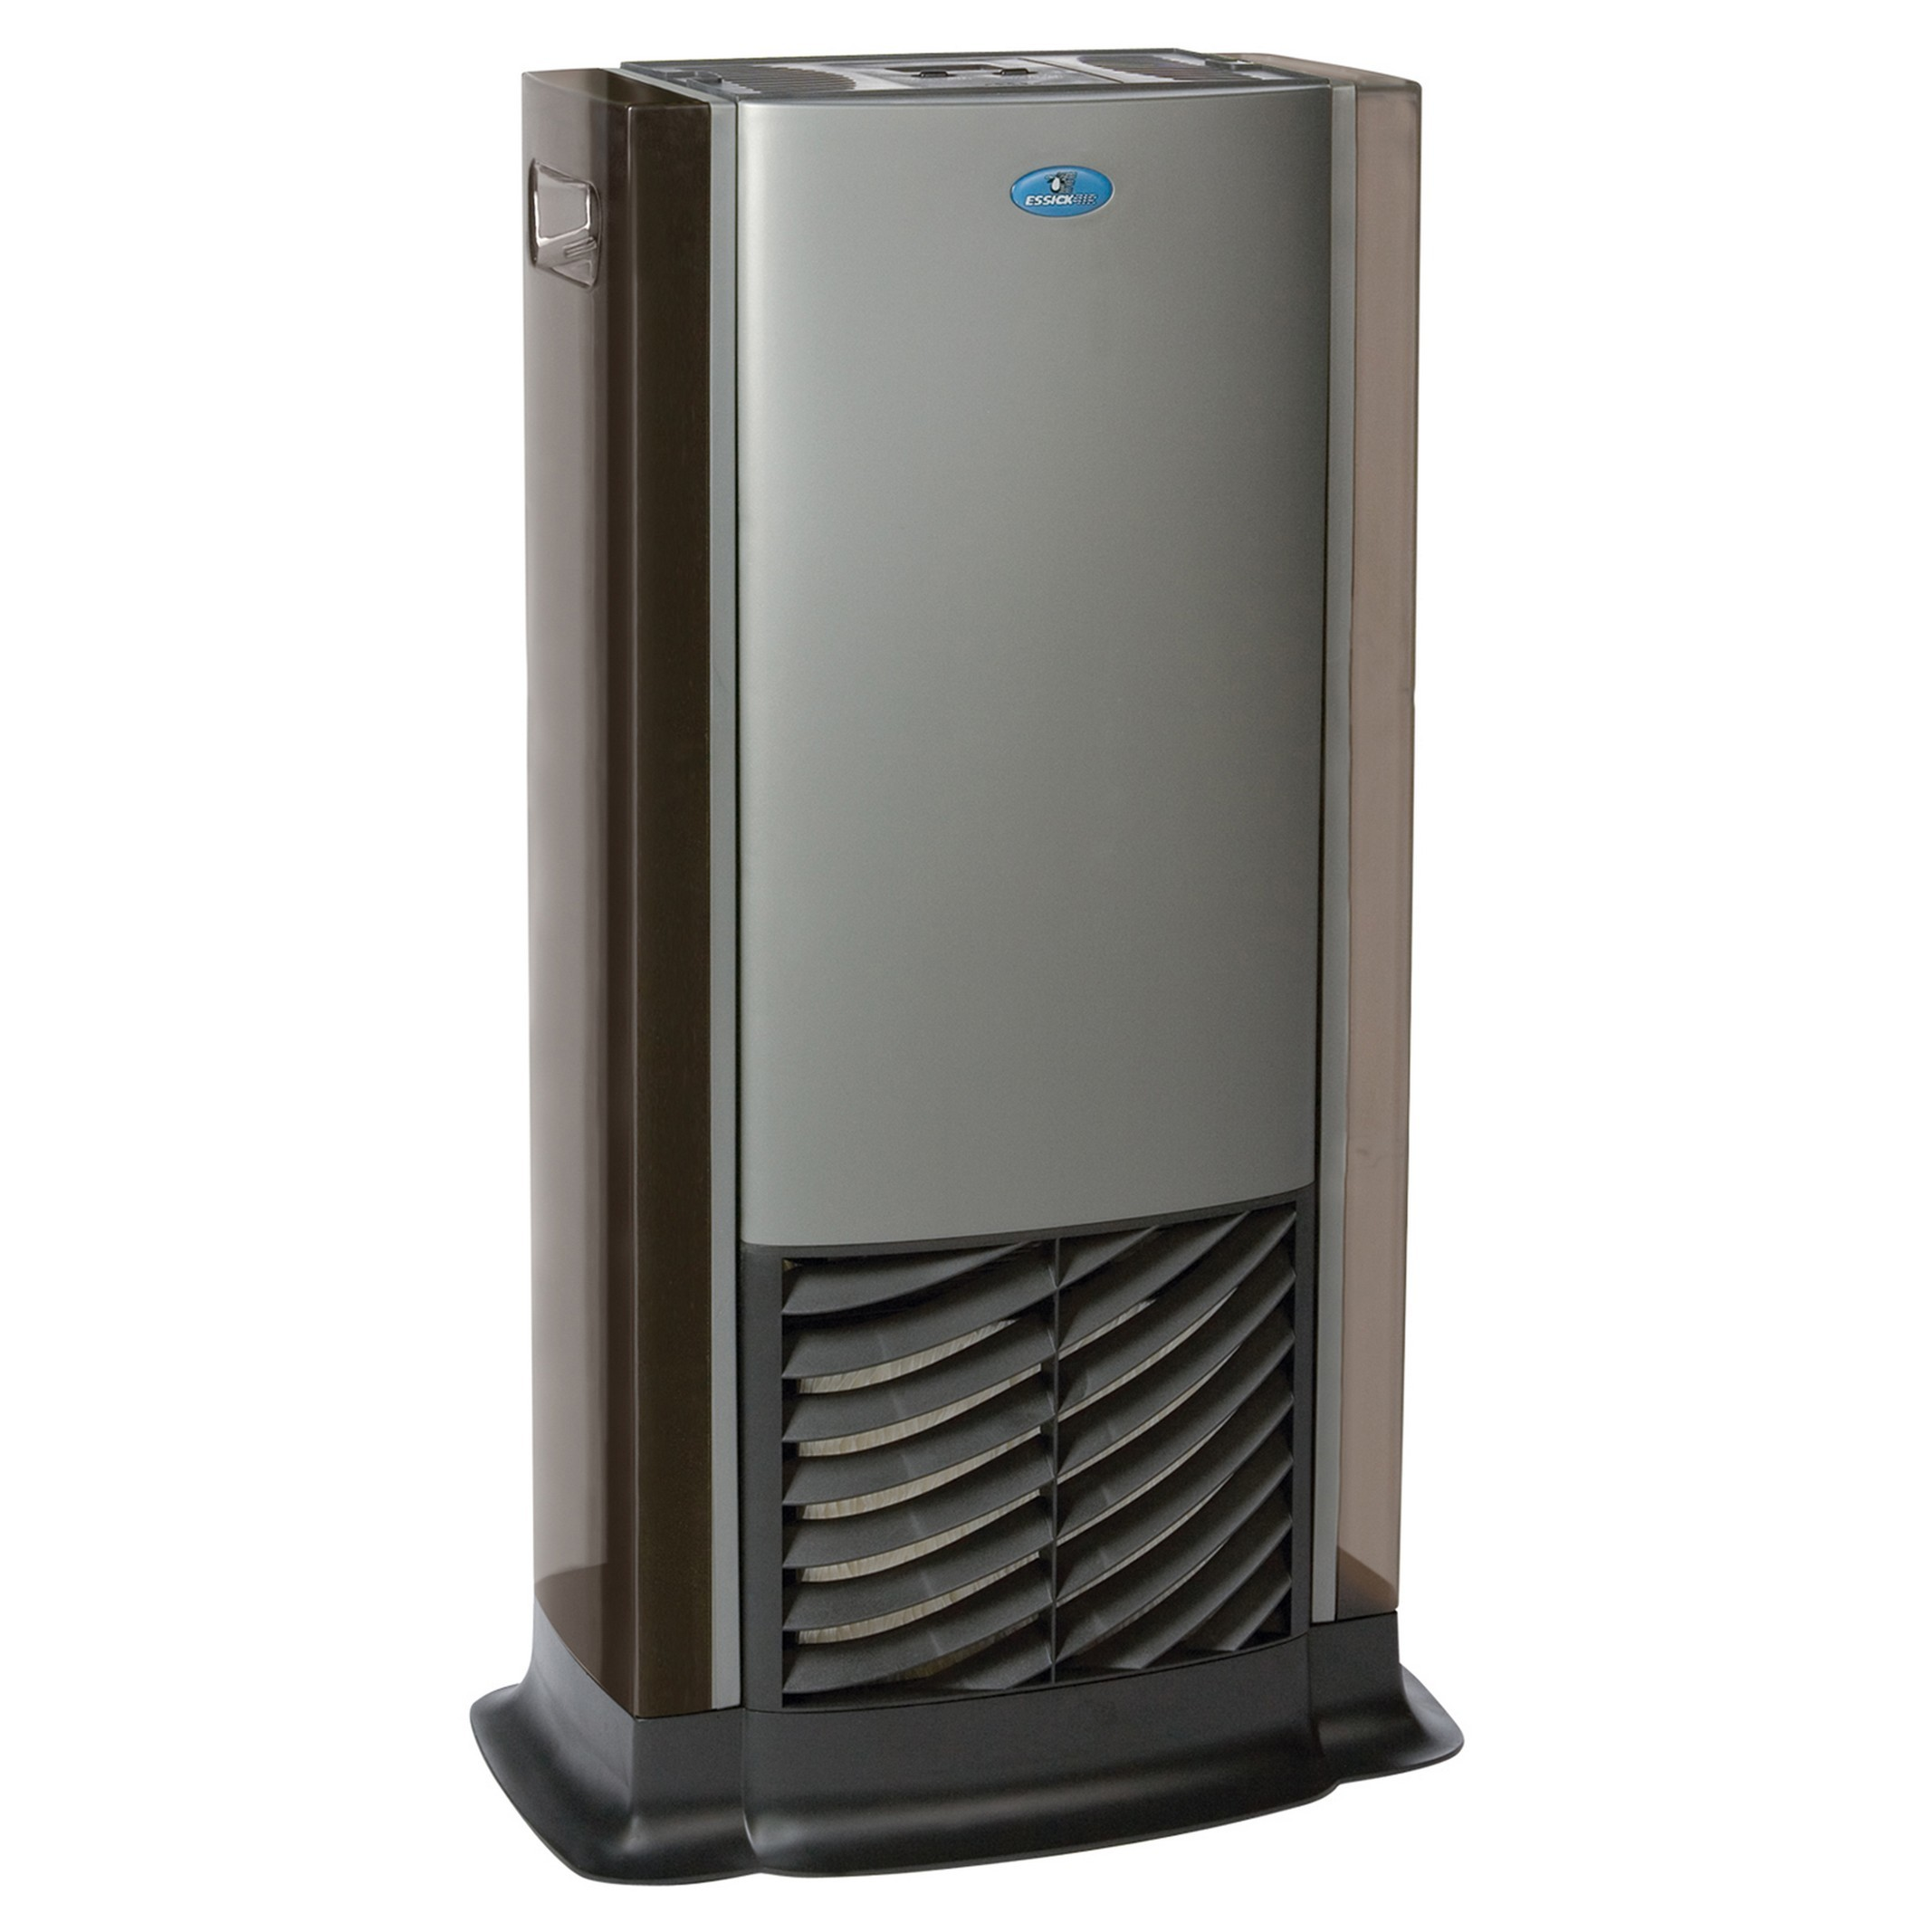 Essick Air D46 720 Tower Multi Room Evaporative Humidifier eBay #466779